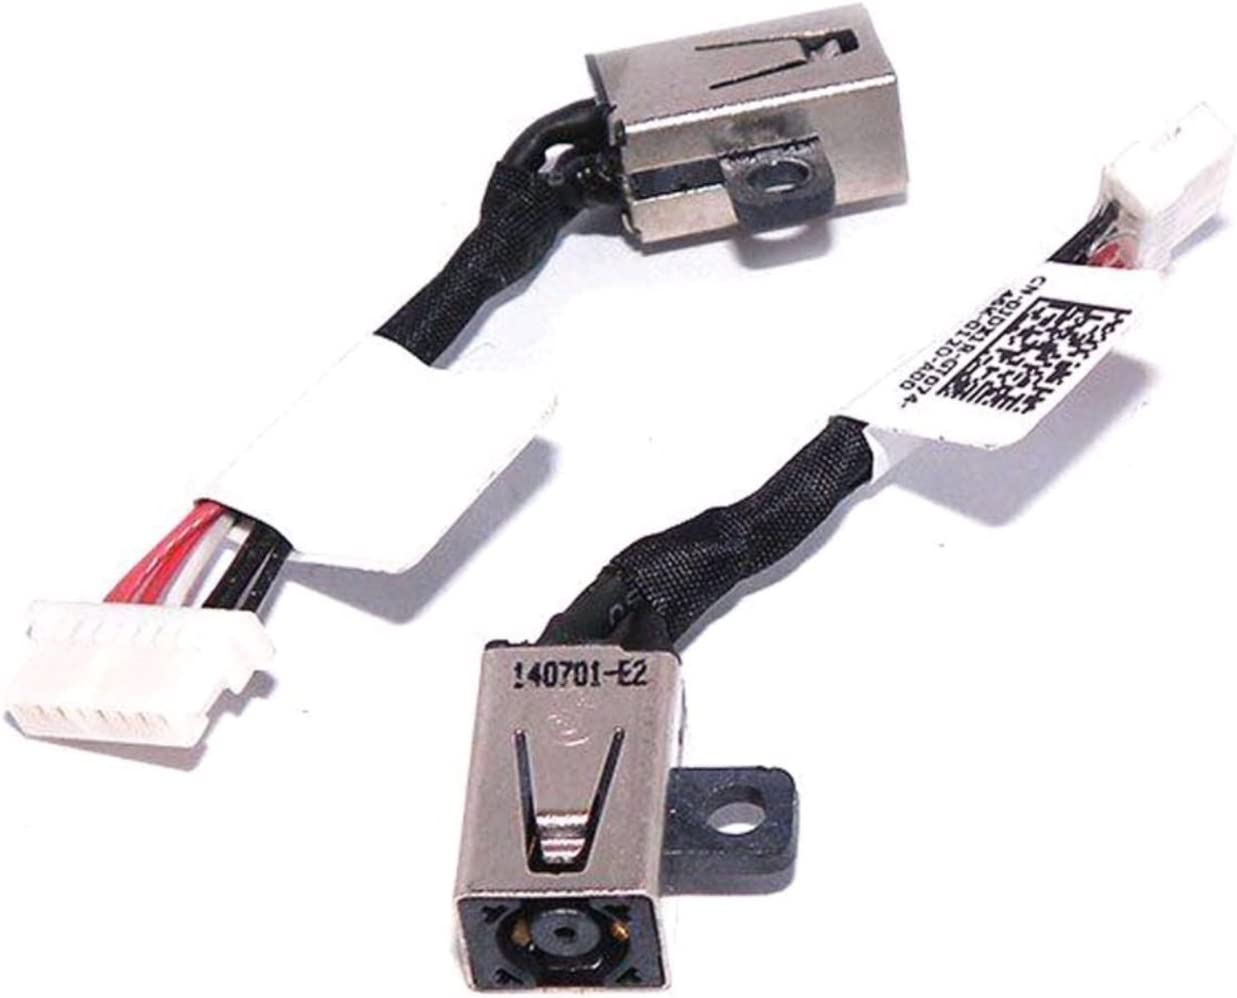 DC Power Jack Cable Replacement for Dell Inspiron 11-3148, 13-7347 13-7348 13-7352 P57G 13-7000 0JDX1R, Inspiron 13-5368, Inspiron 15-7558 7569 7579